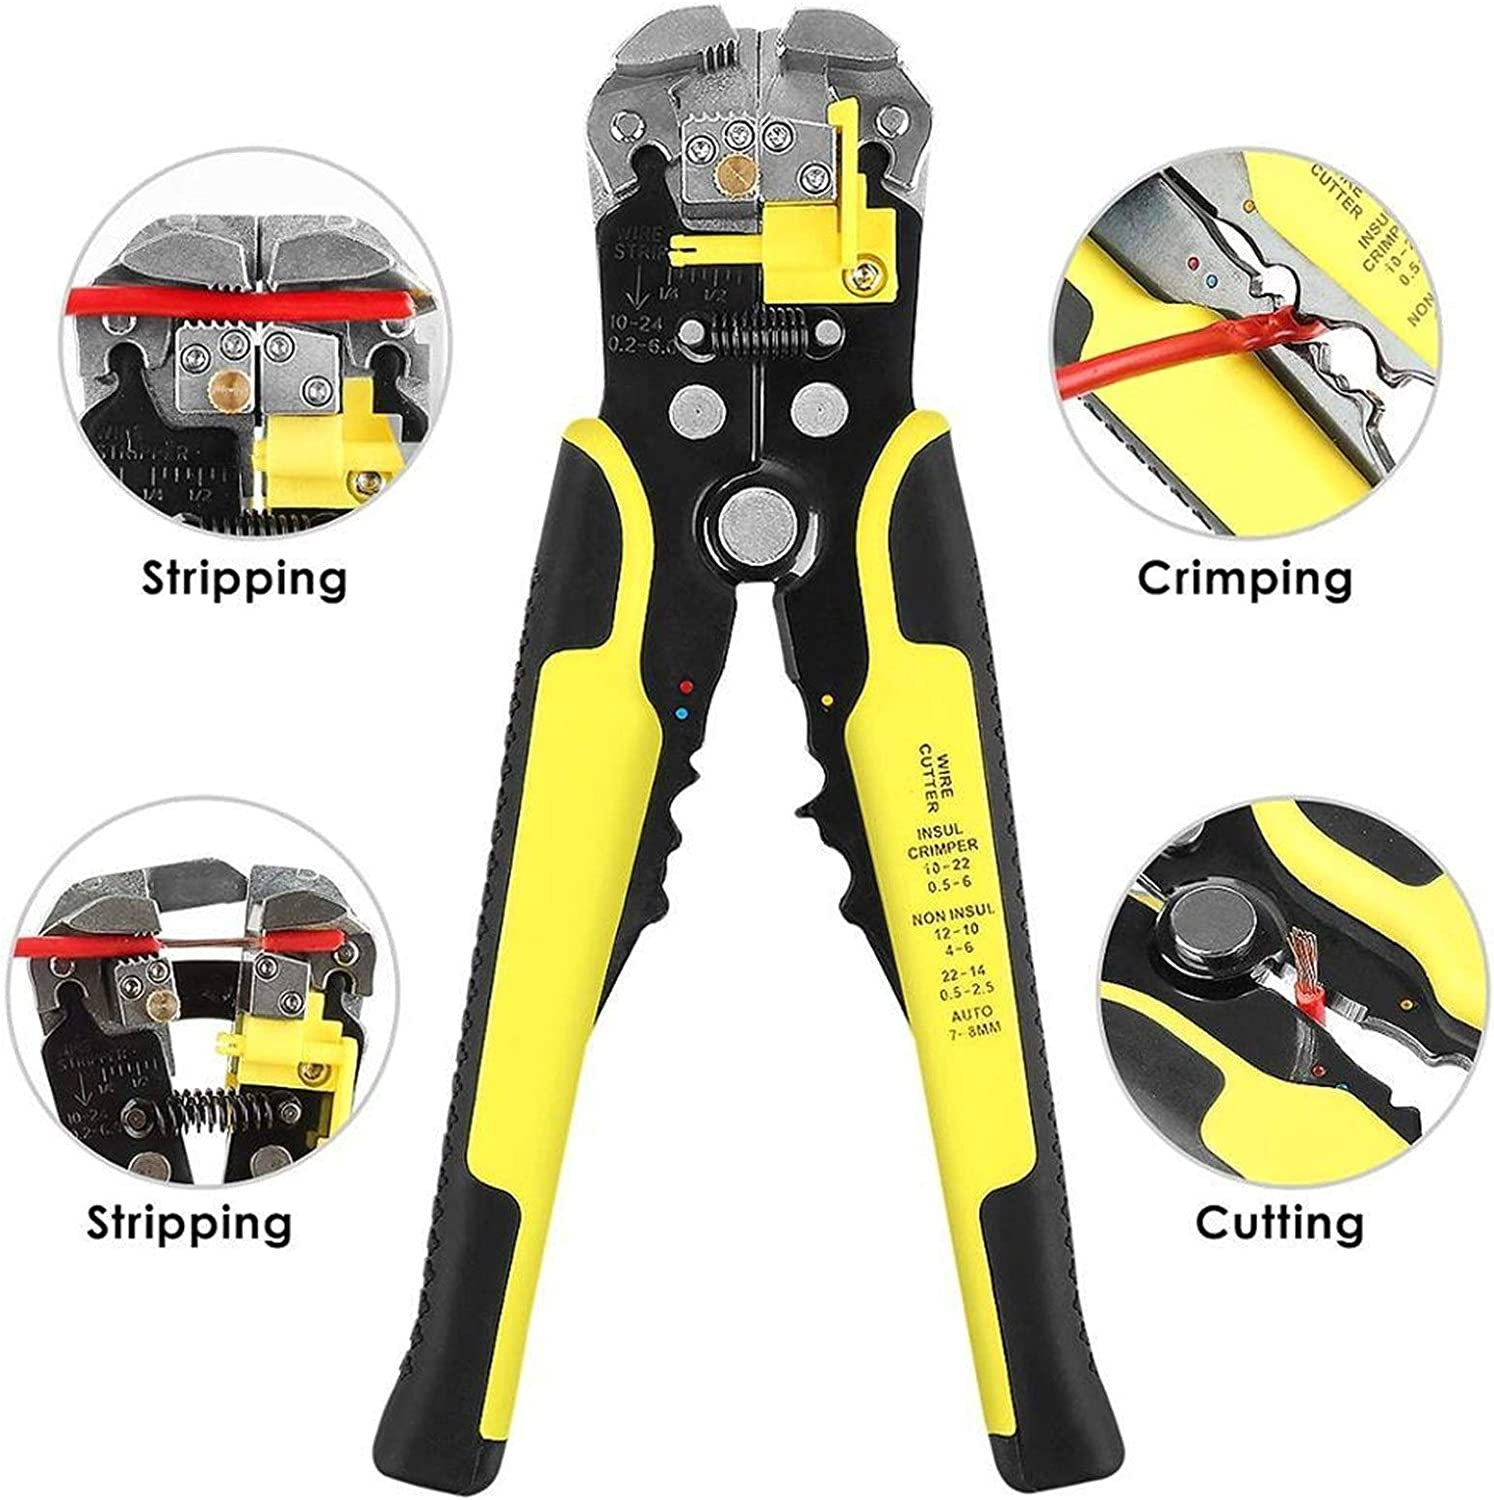 4 in 1 Wire Crimpers Engineering Ratcheting Terminal Crimping Pliers Wire Stripper Tools Set Hand Tools (Color : Gold) Other